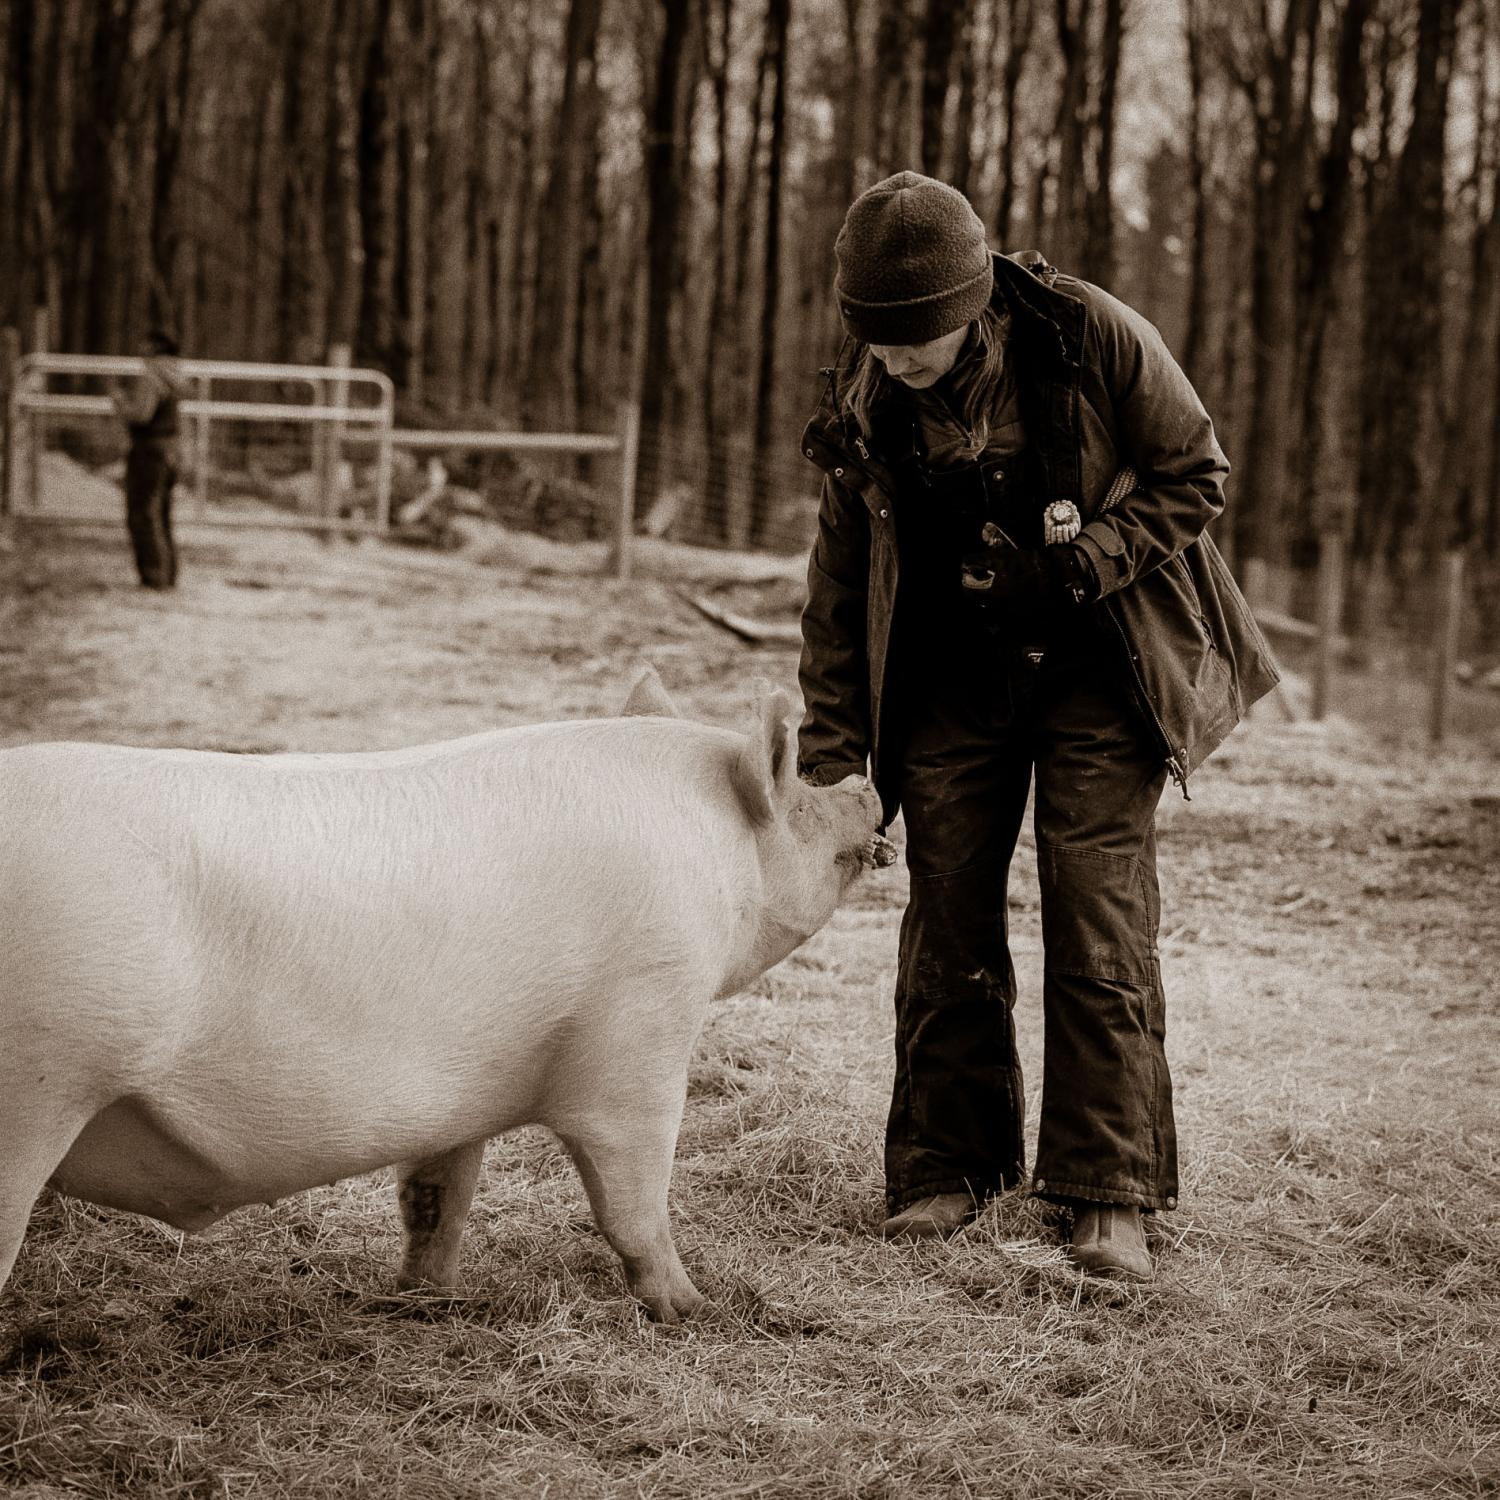 Lynn Printy, co-founder with her husband Oscar of JP Farm Animal Sanctuary in Connecticut